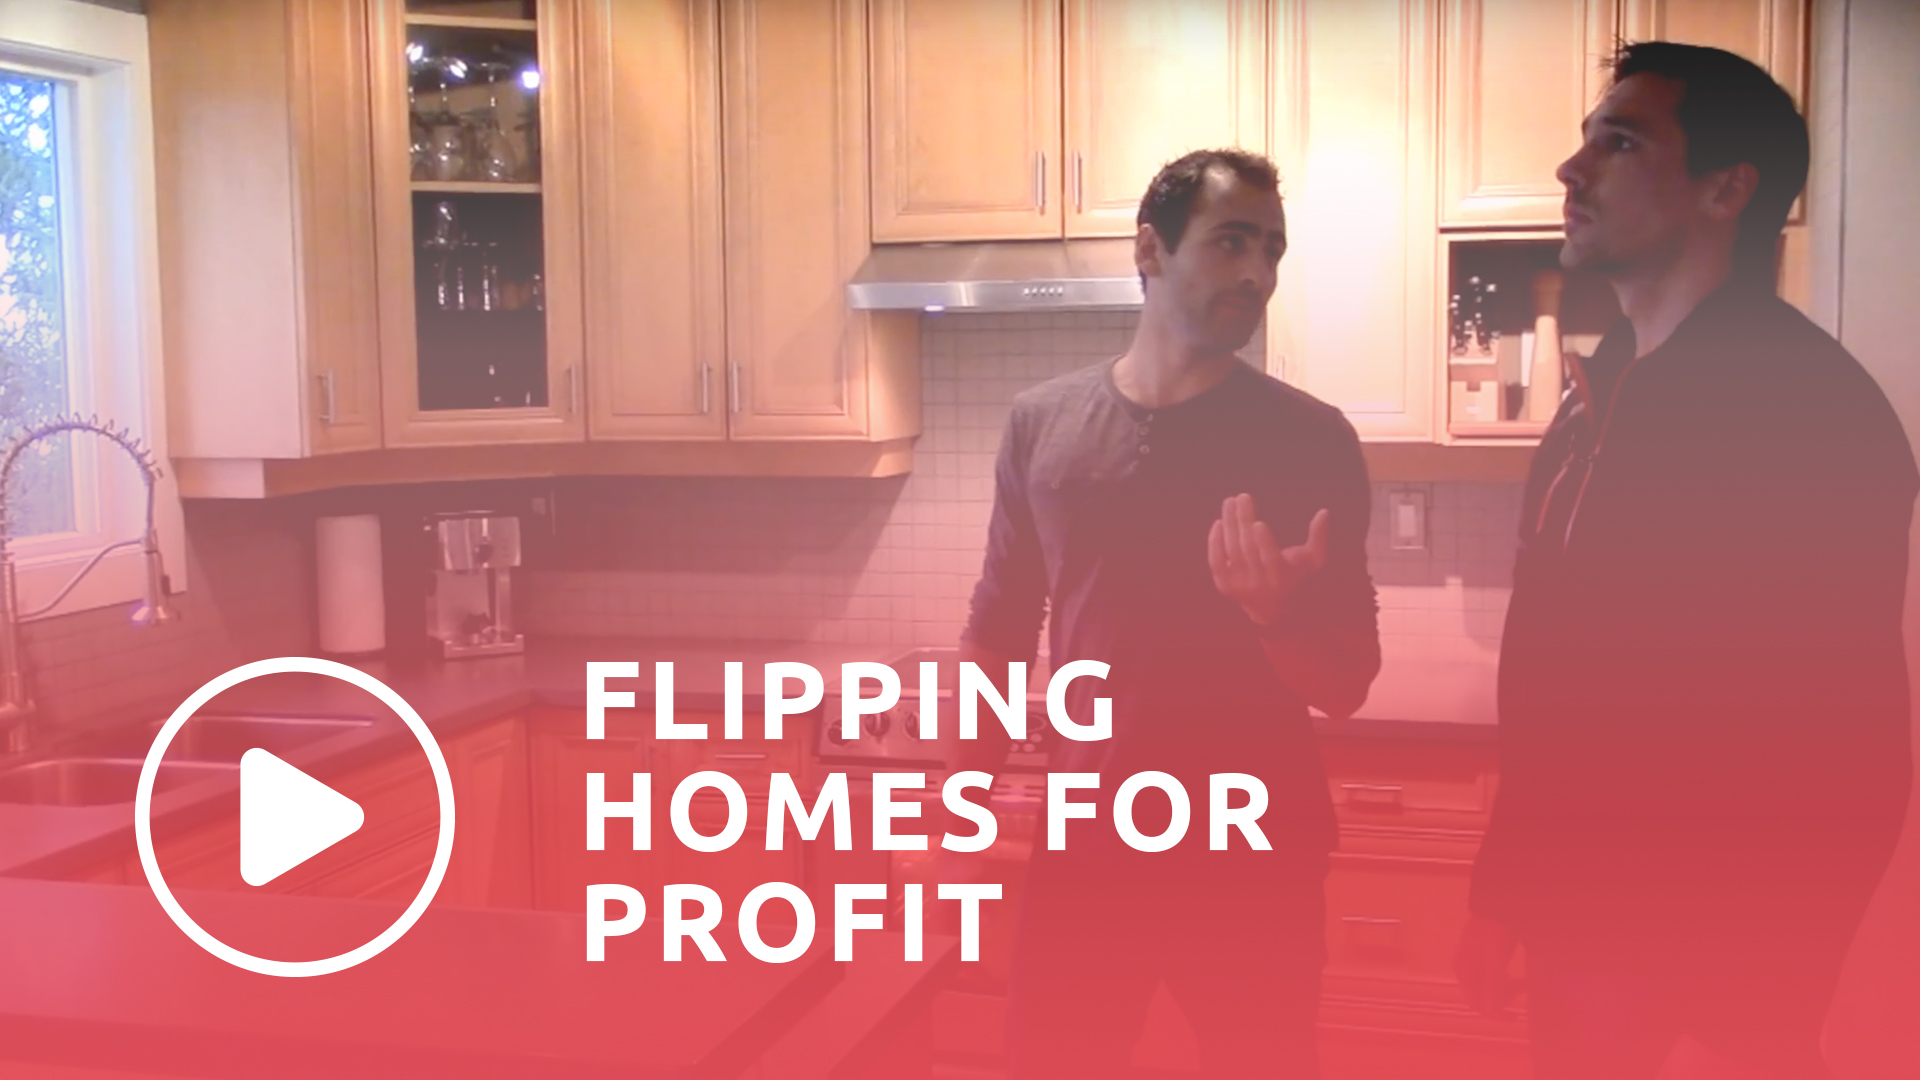 Watch video flipping homes for profit.